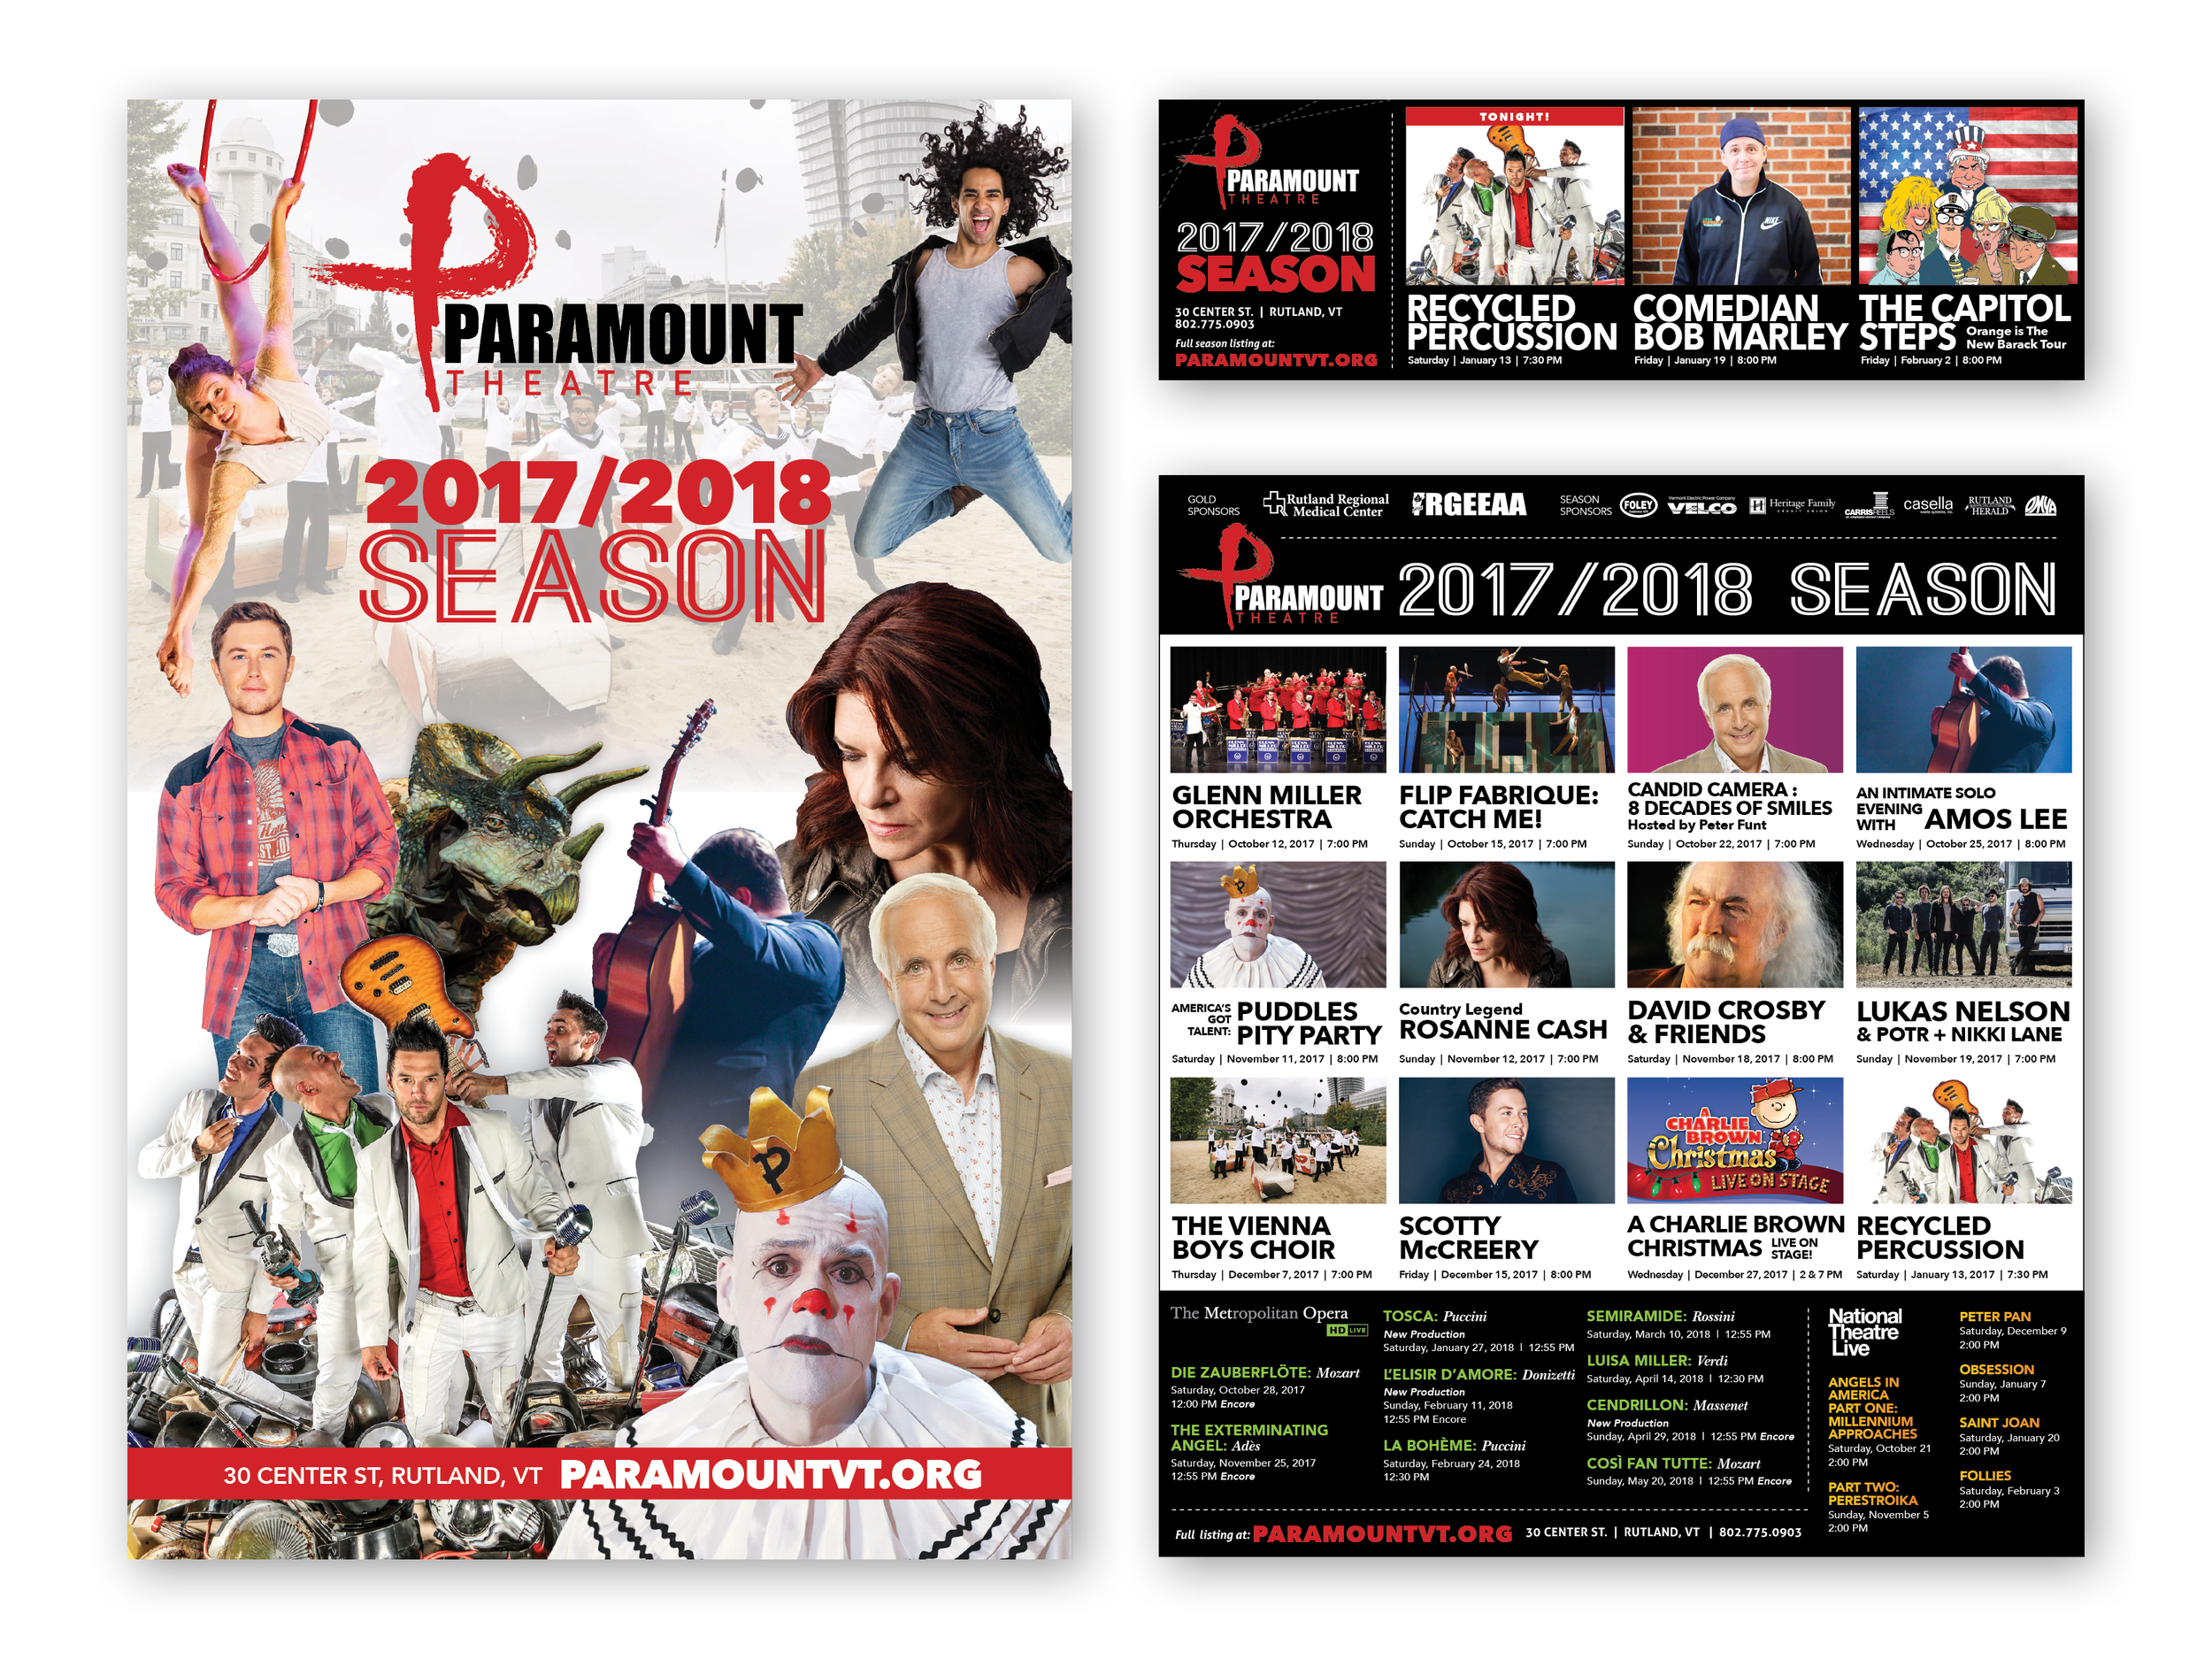 Paramount Theatre season ads & playbill